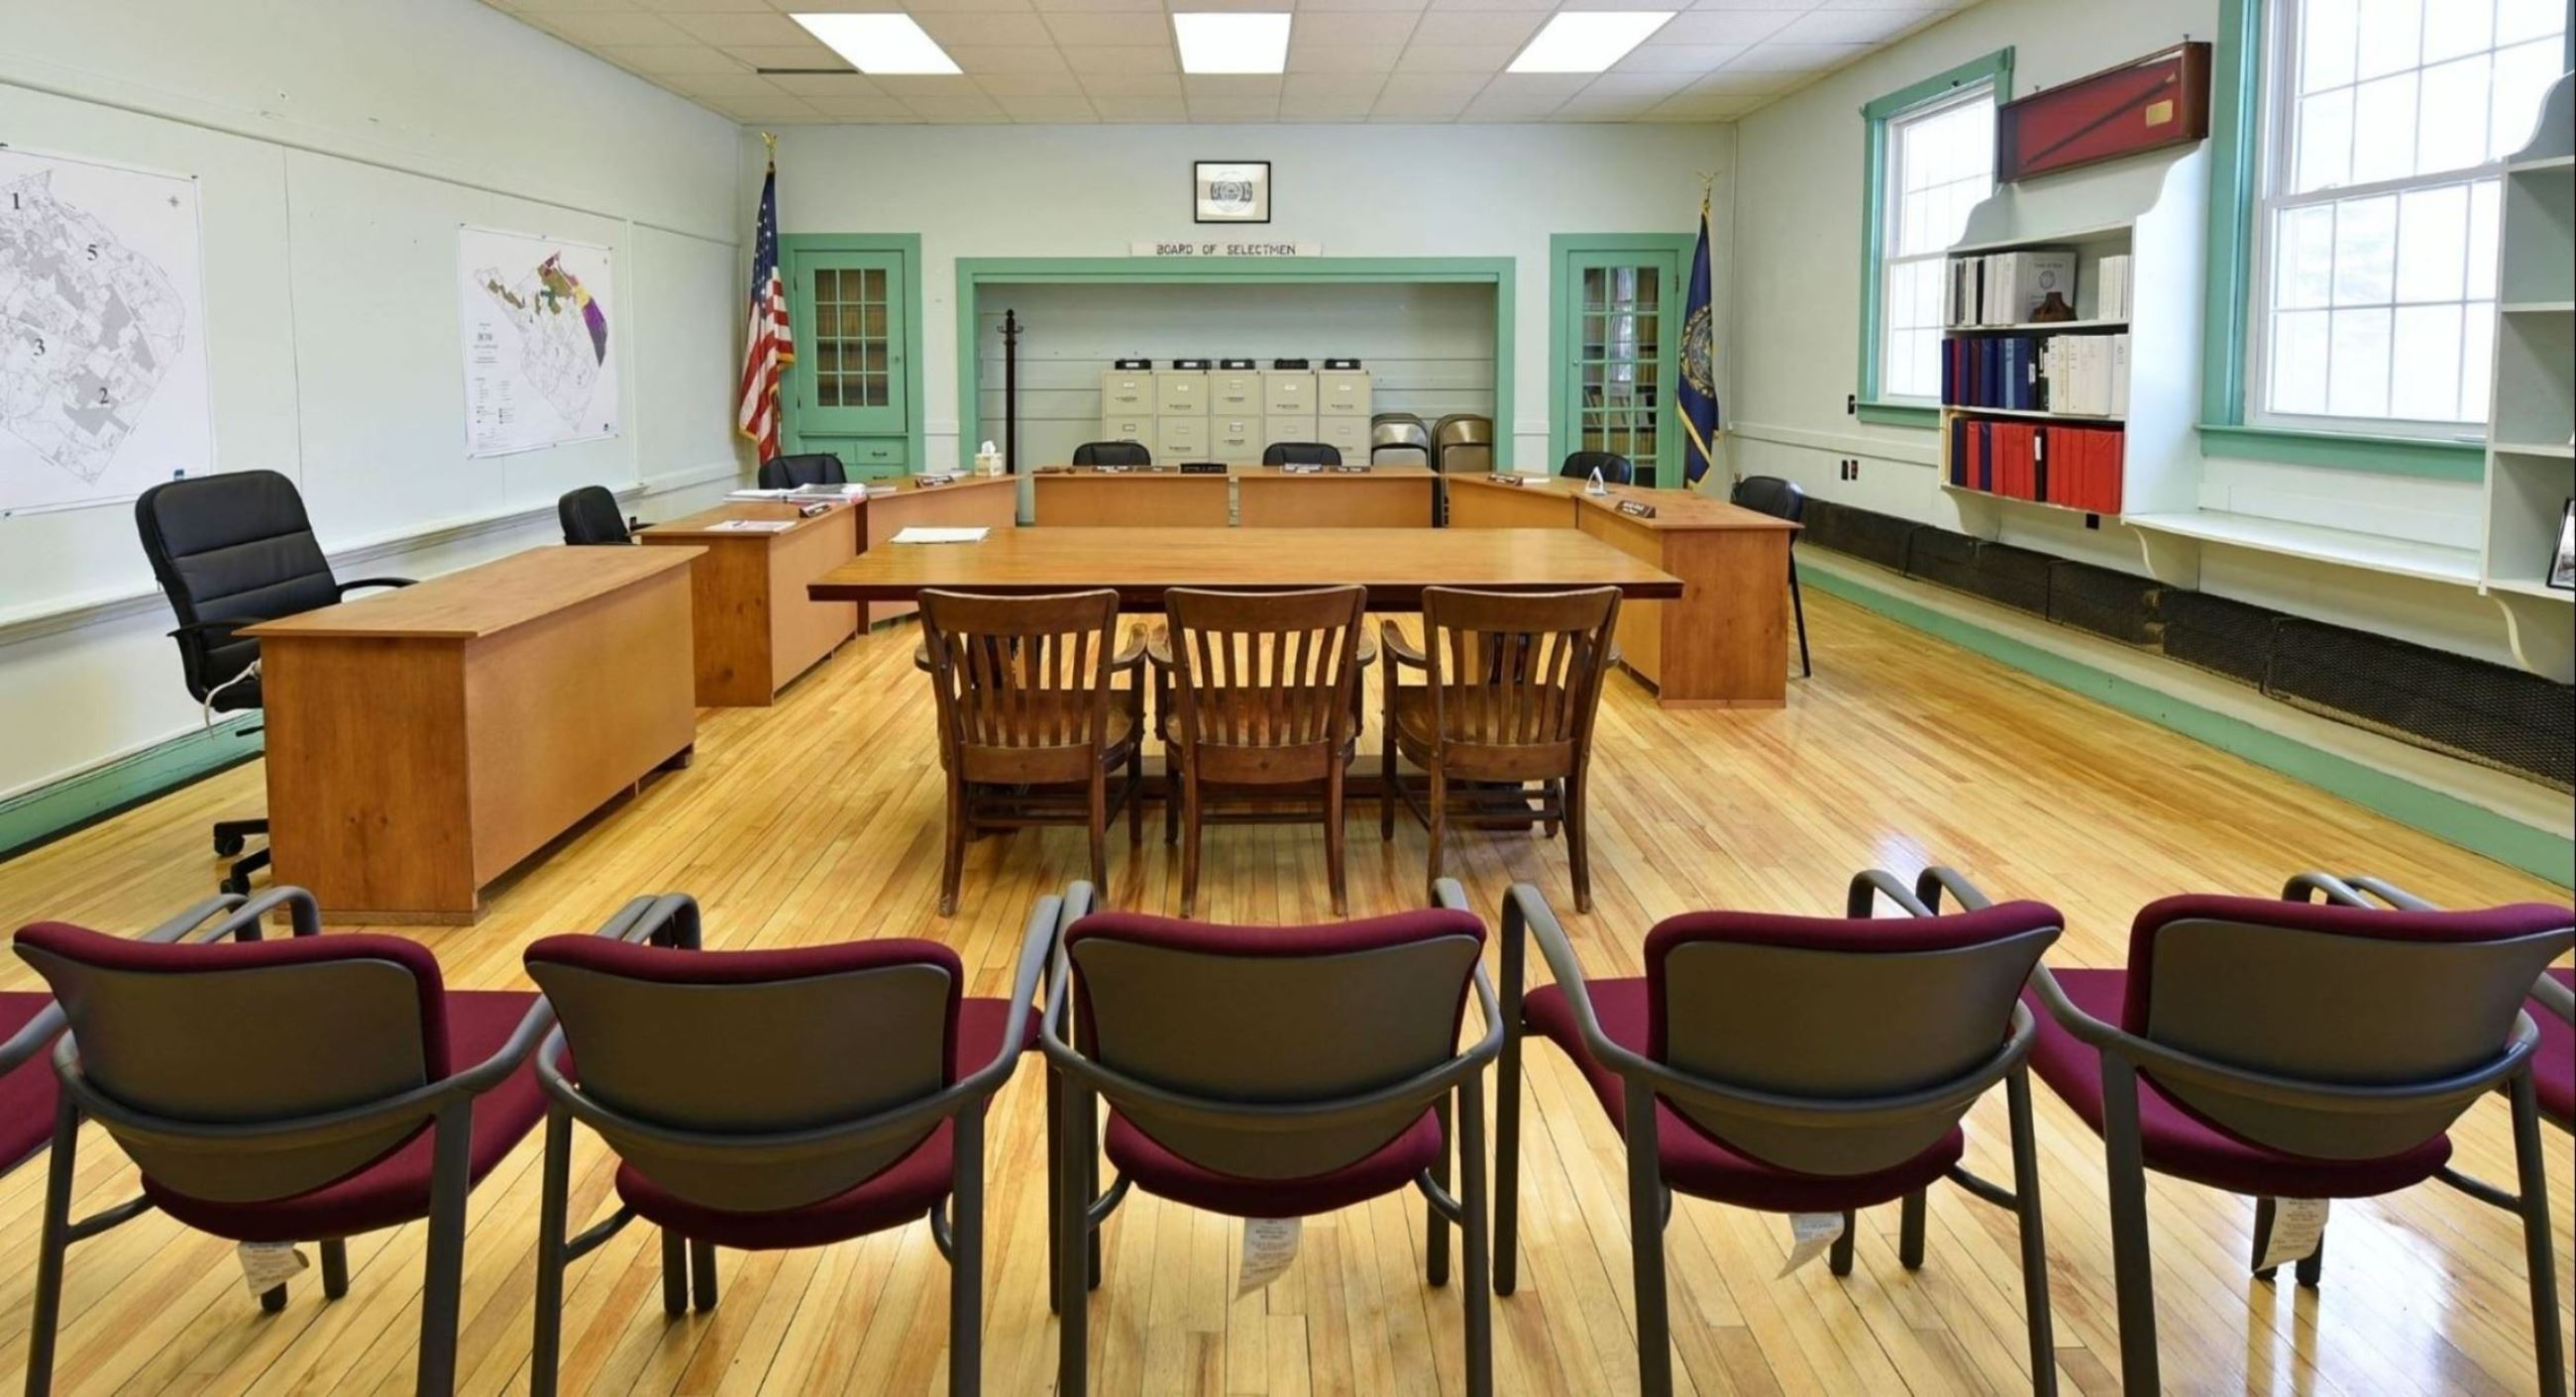 Selectmen's Meeting Room